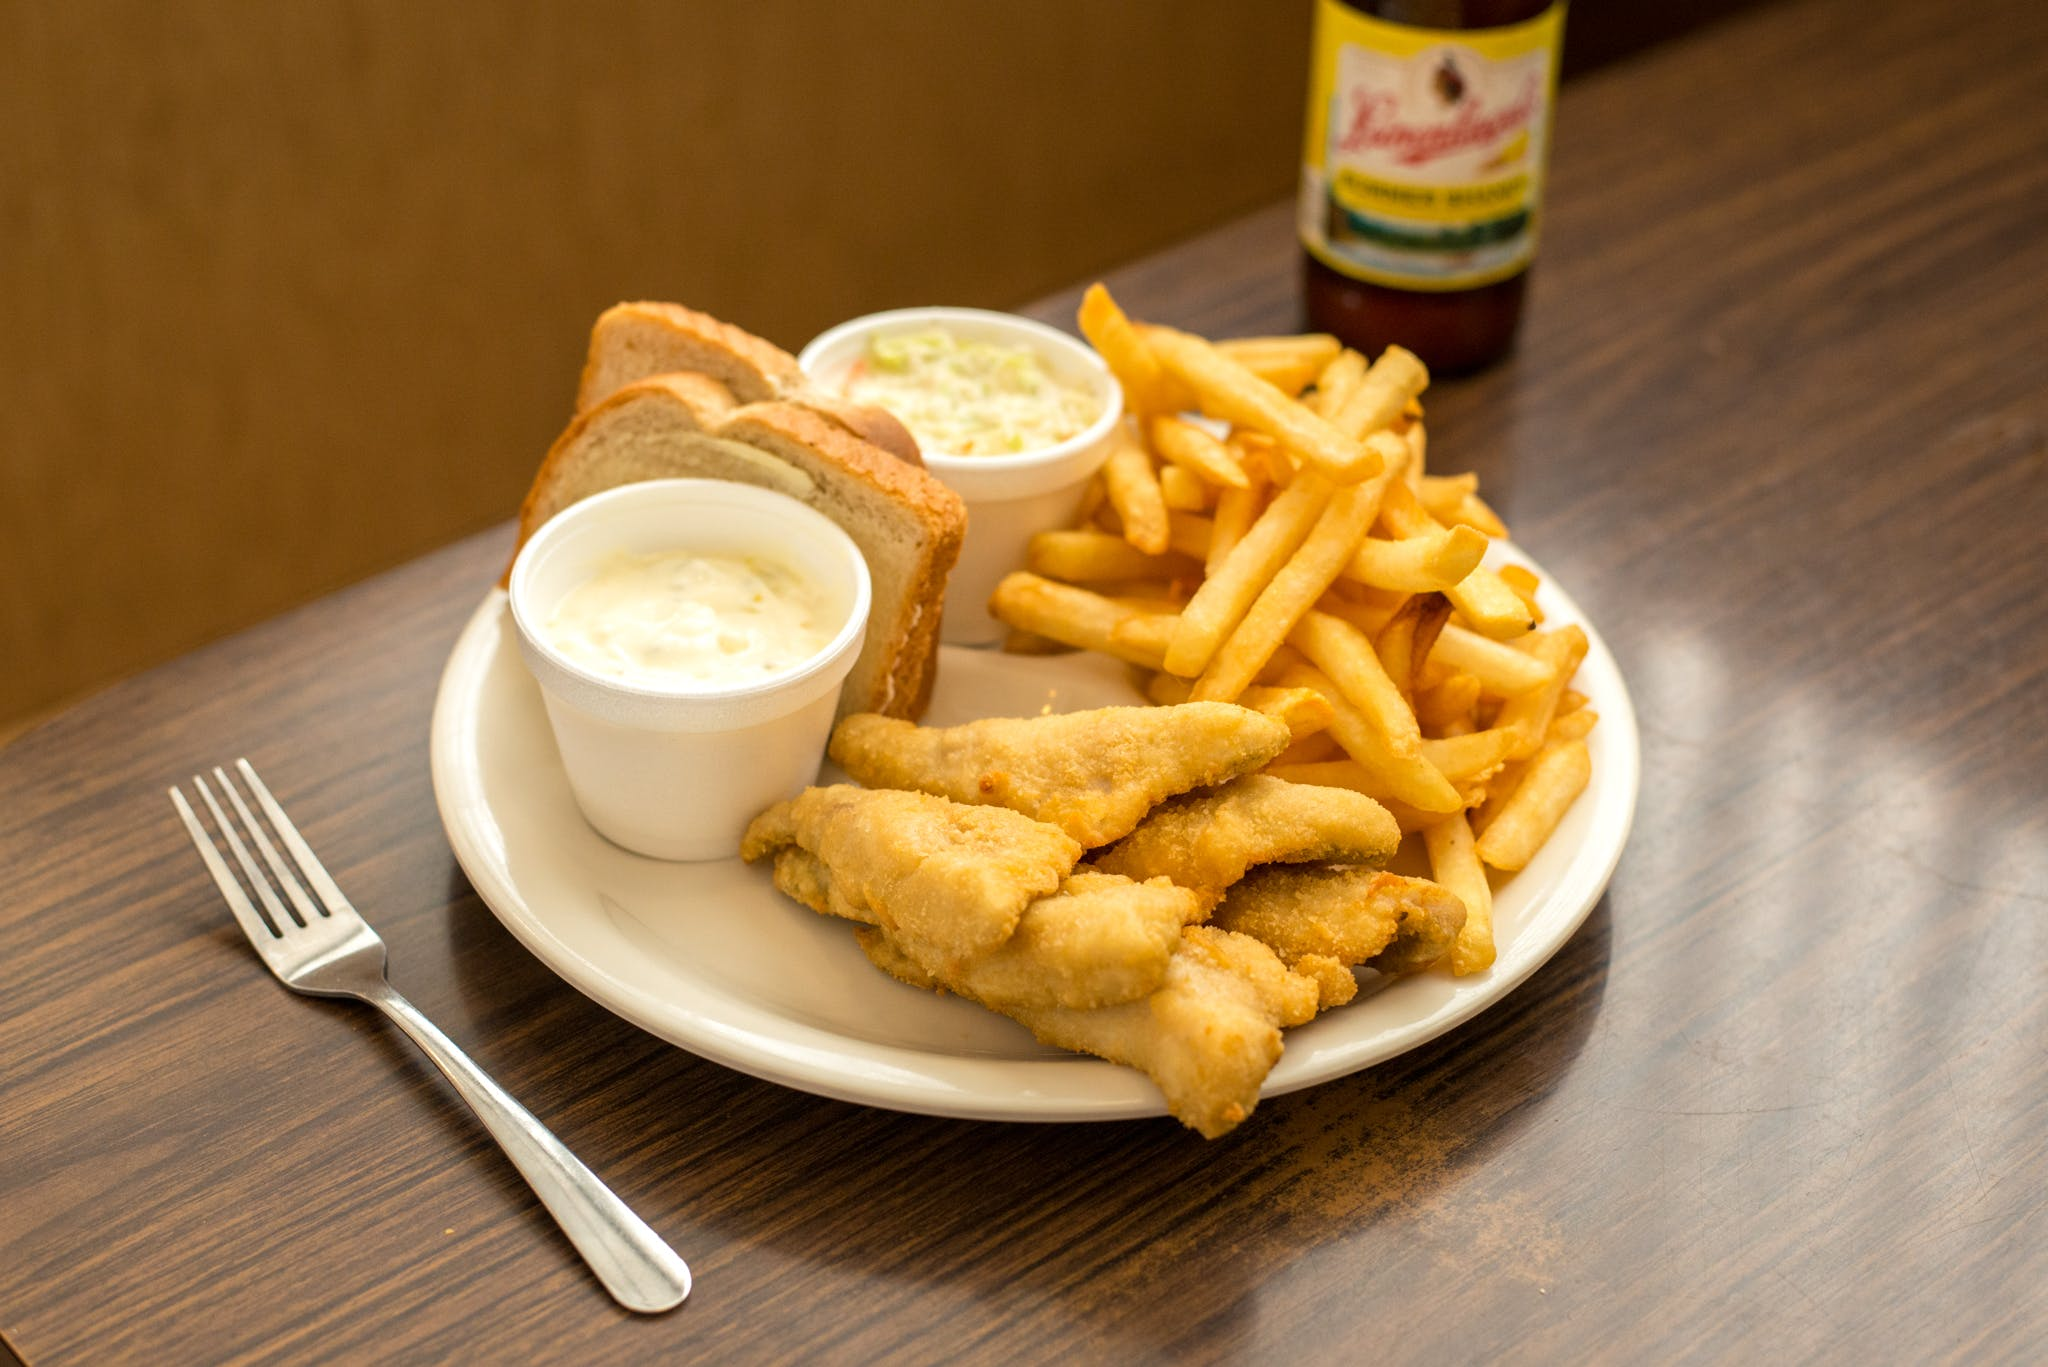 Regular Perch Plate from Kroll's East in Green Bay, WI